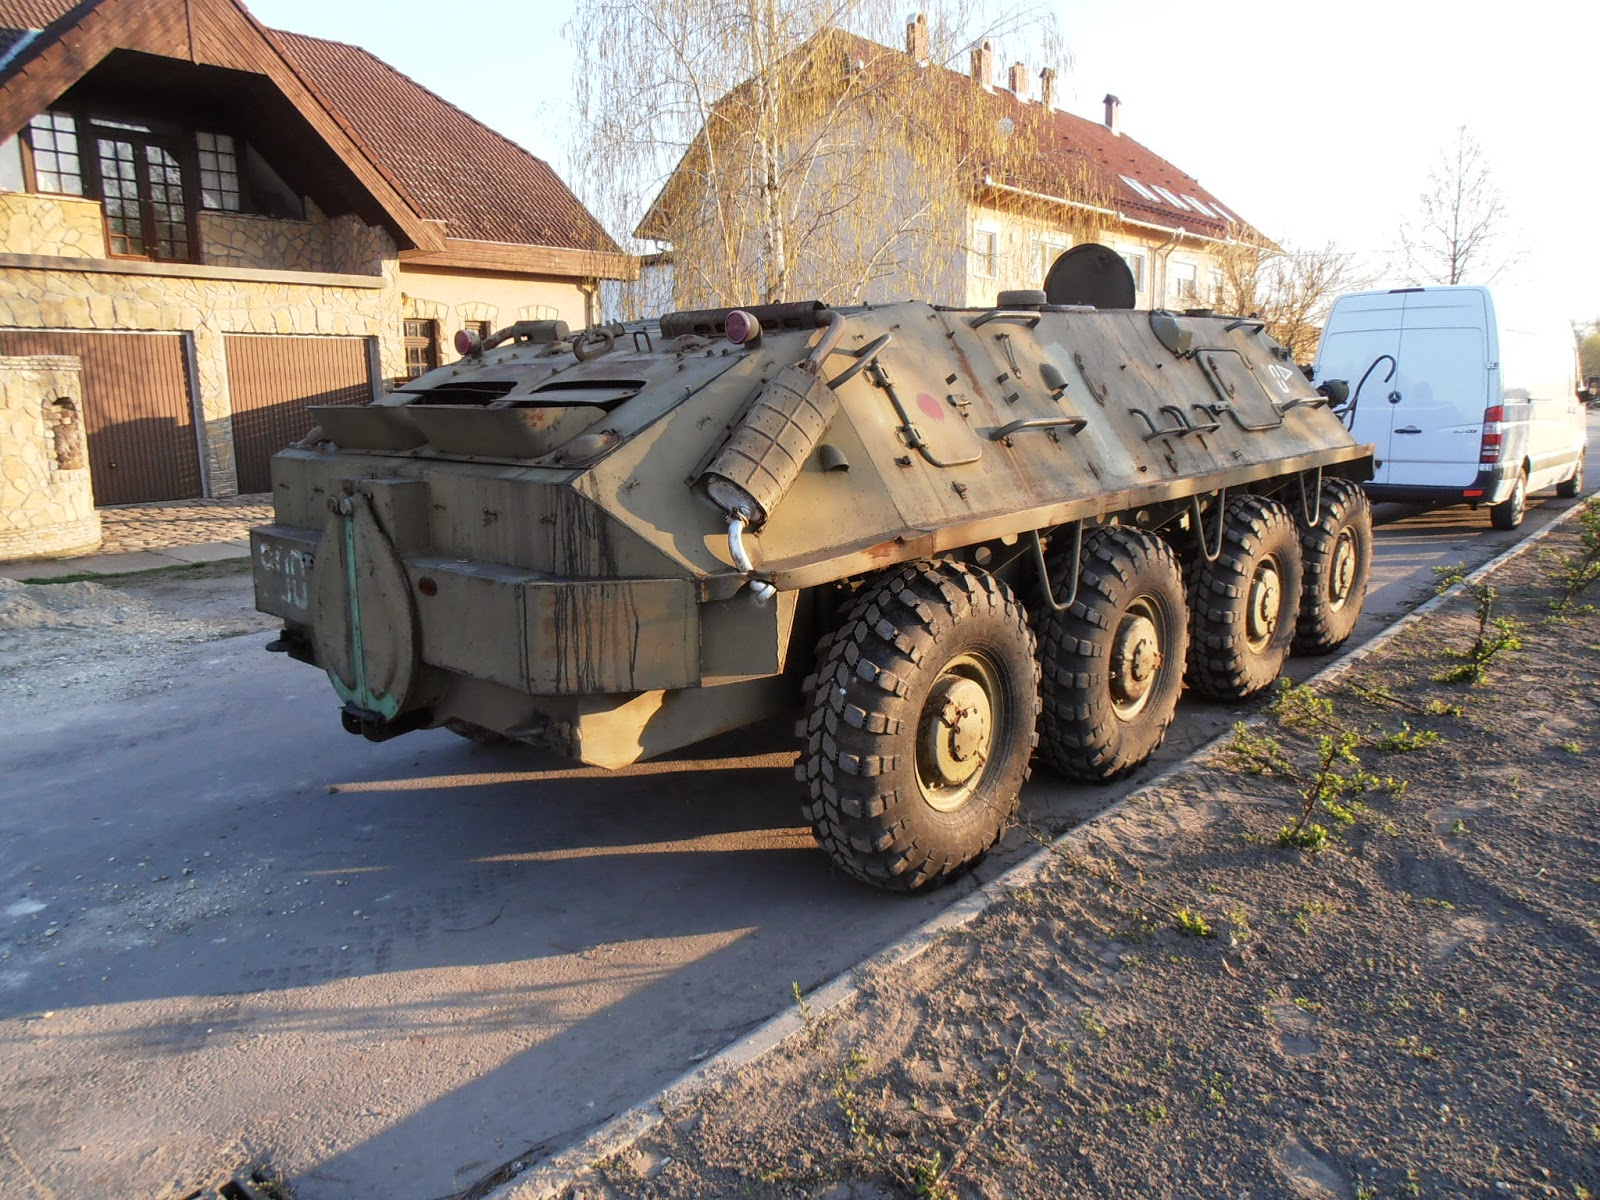 VINTAGE MILITARY VEHICLE SALES AND RESTORATION - HUNGARY: HUNGARIAN